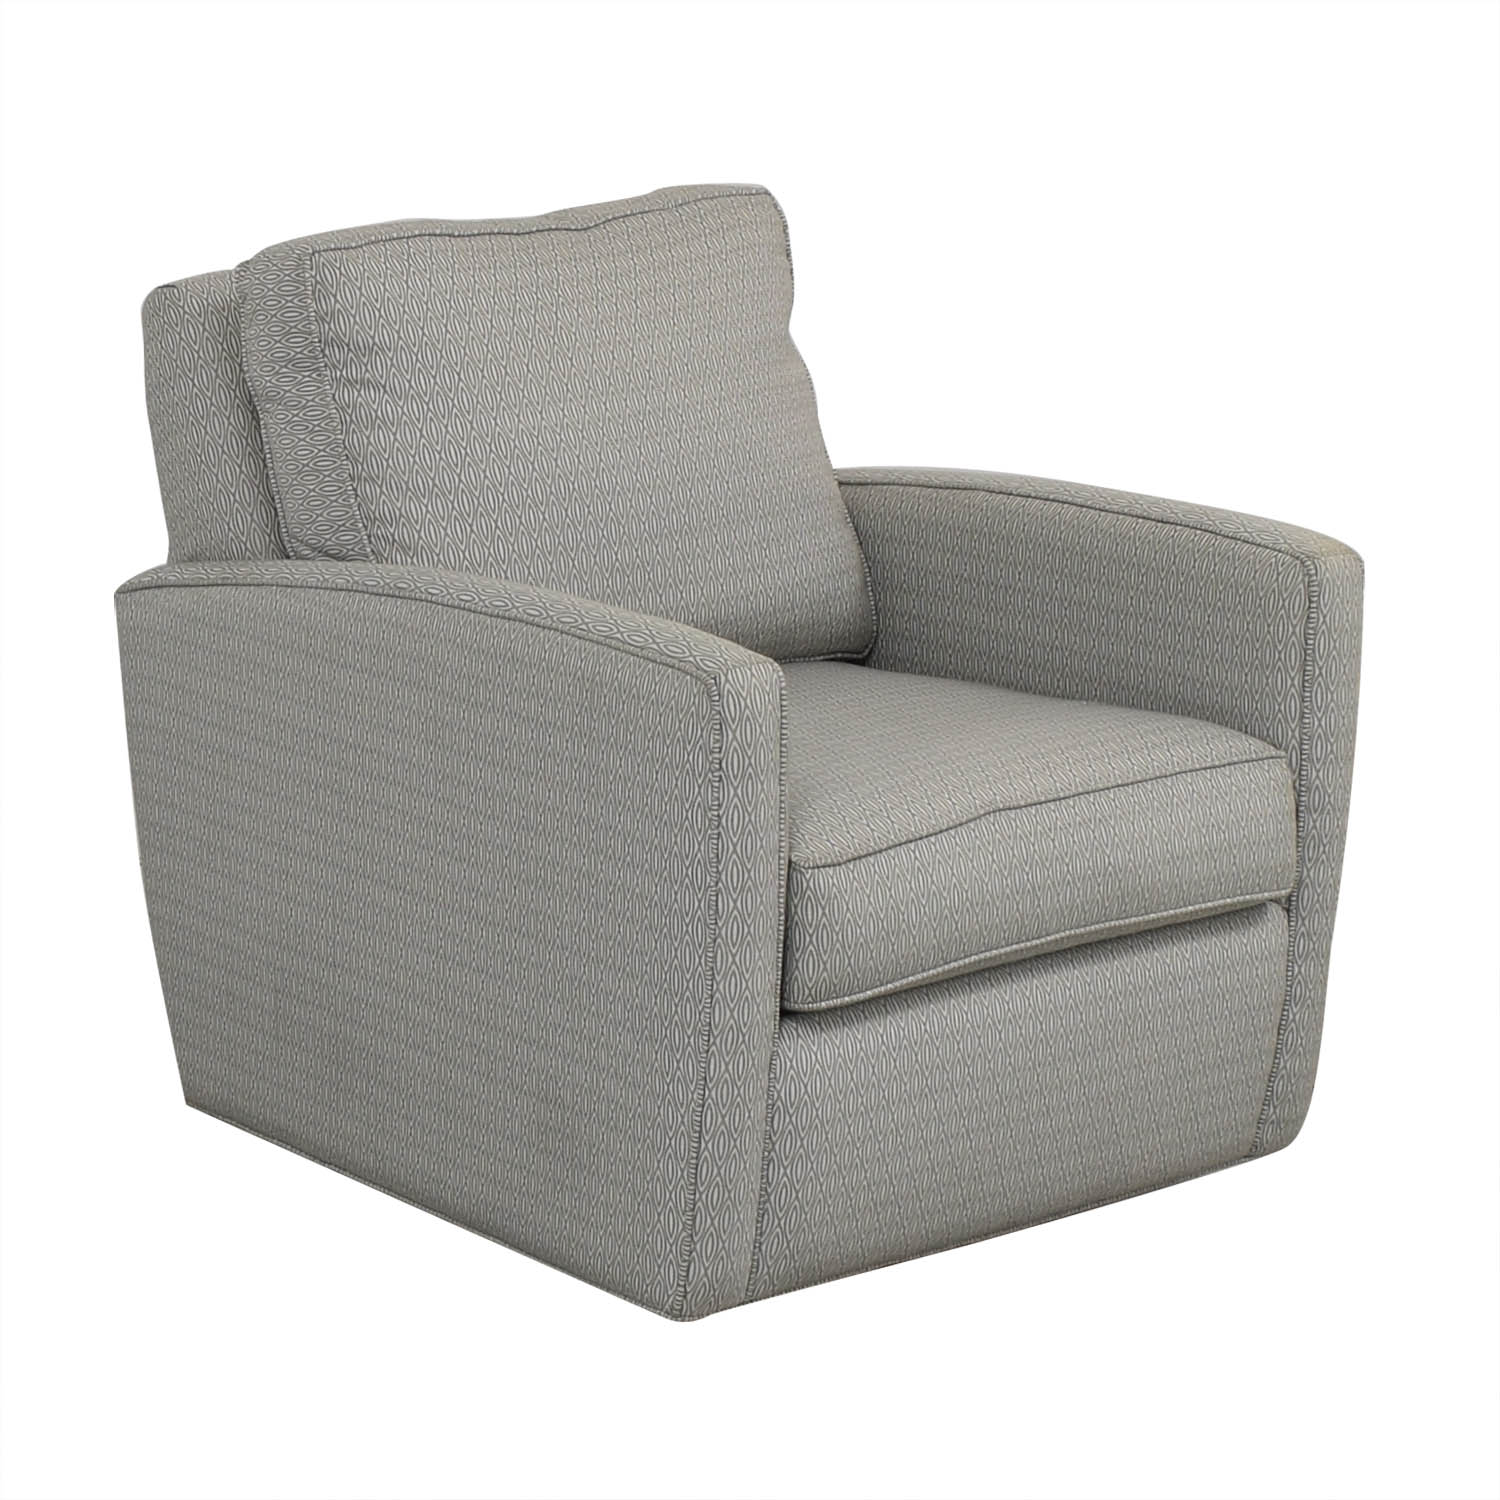 buy Younger Furniture Younger Furniture Lincoln Swivel Glider Chair online